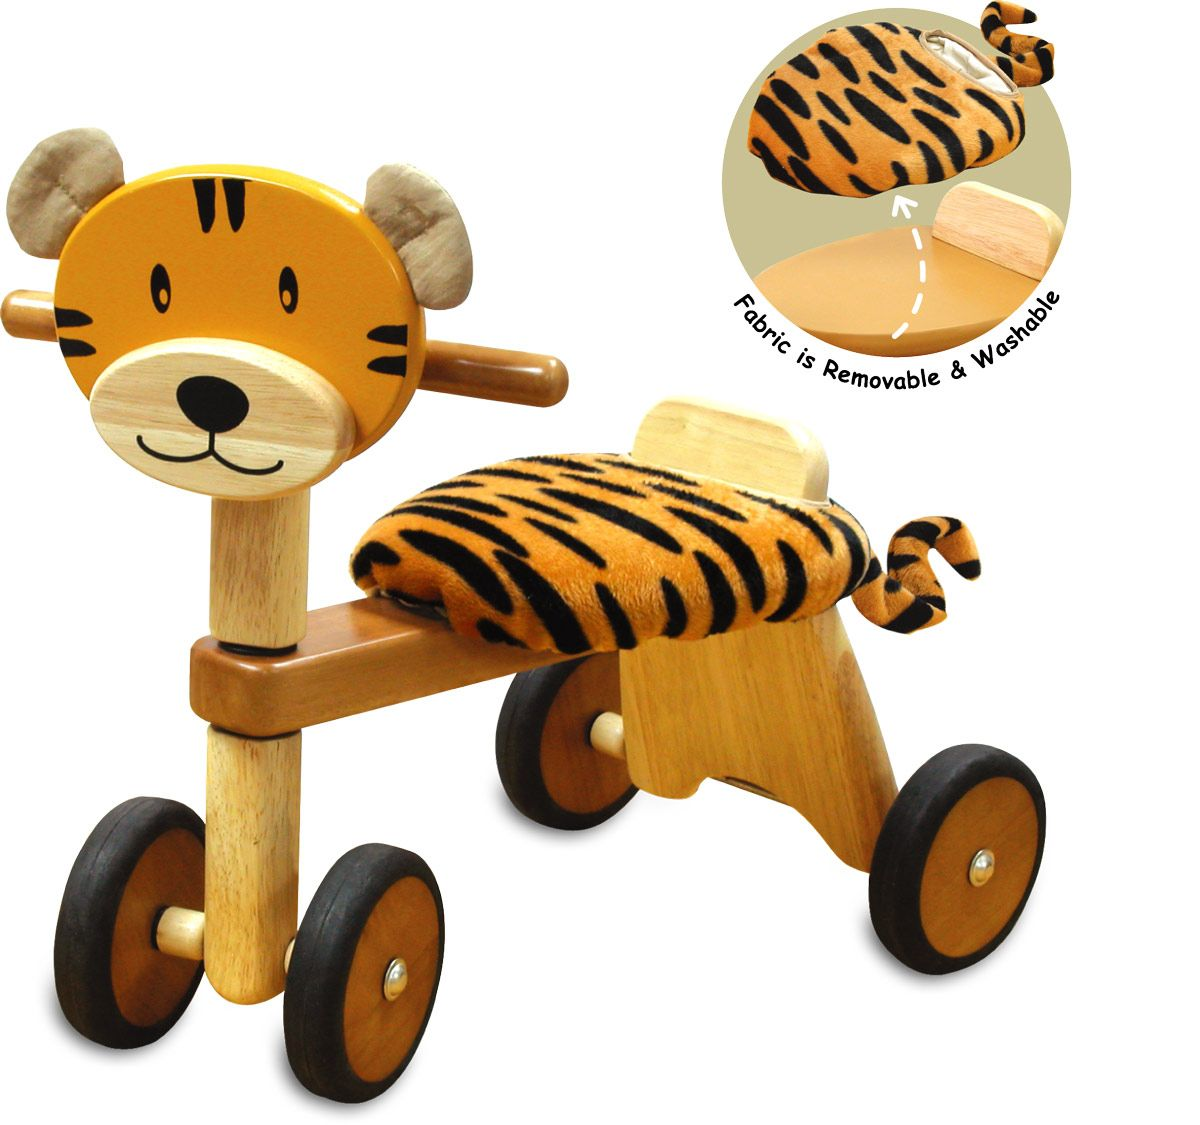 Paddie Rider Tiger by I'm Toy